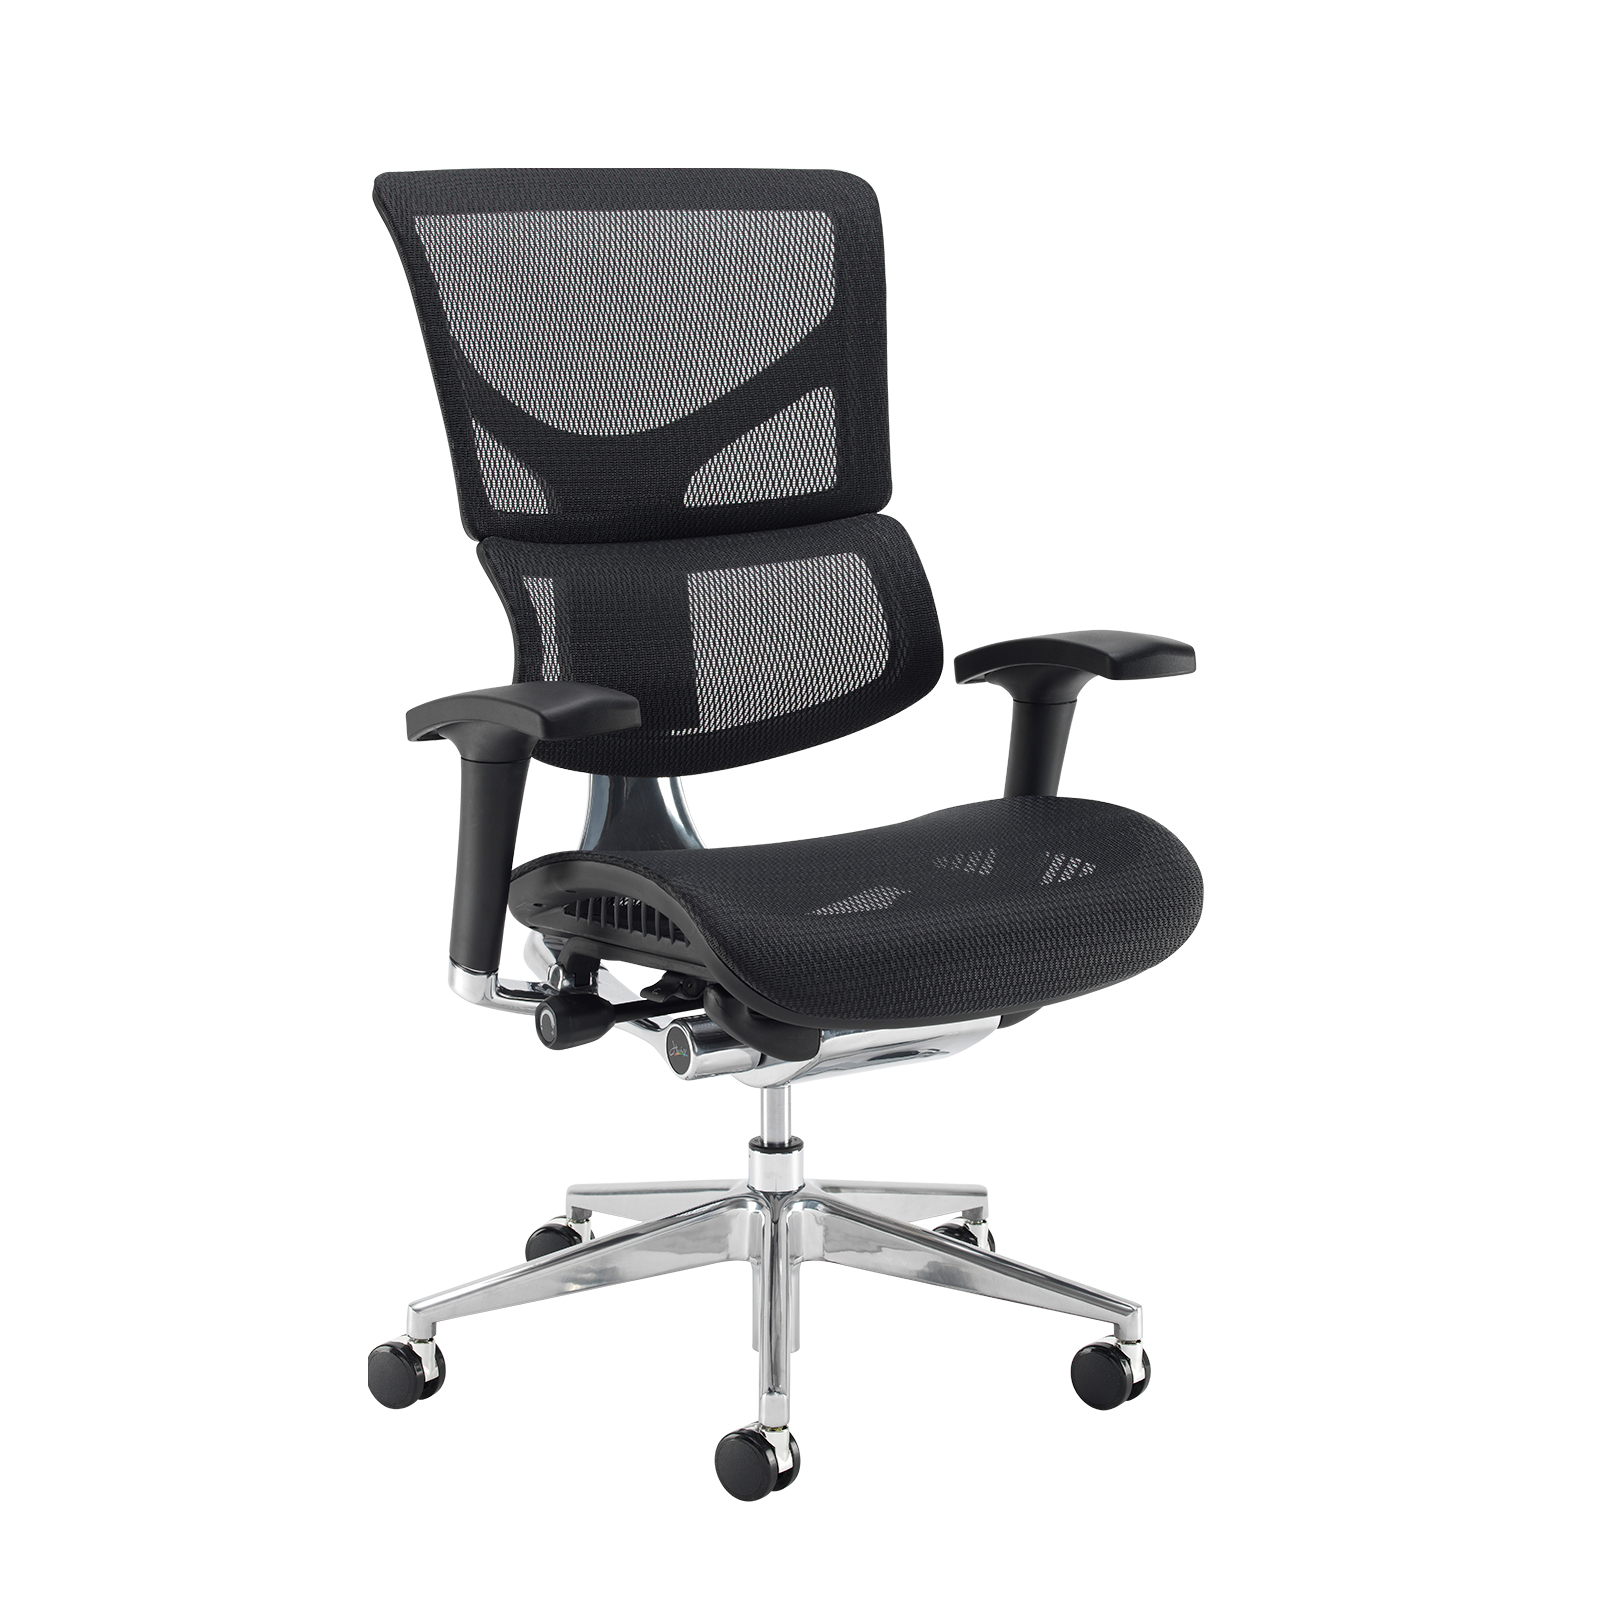 Desk Chairs Dynamo Ergo mesh back posture chair